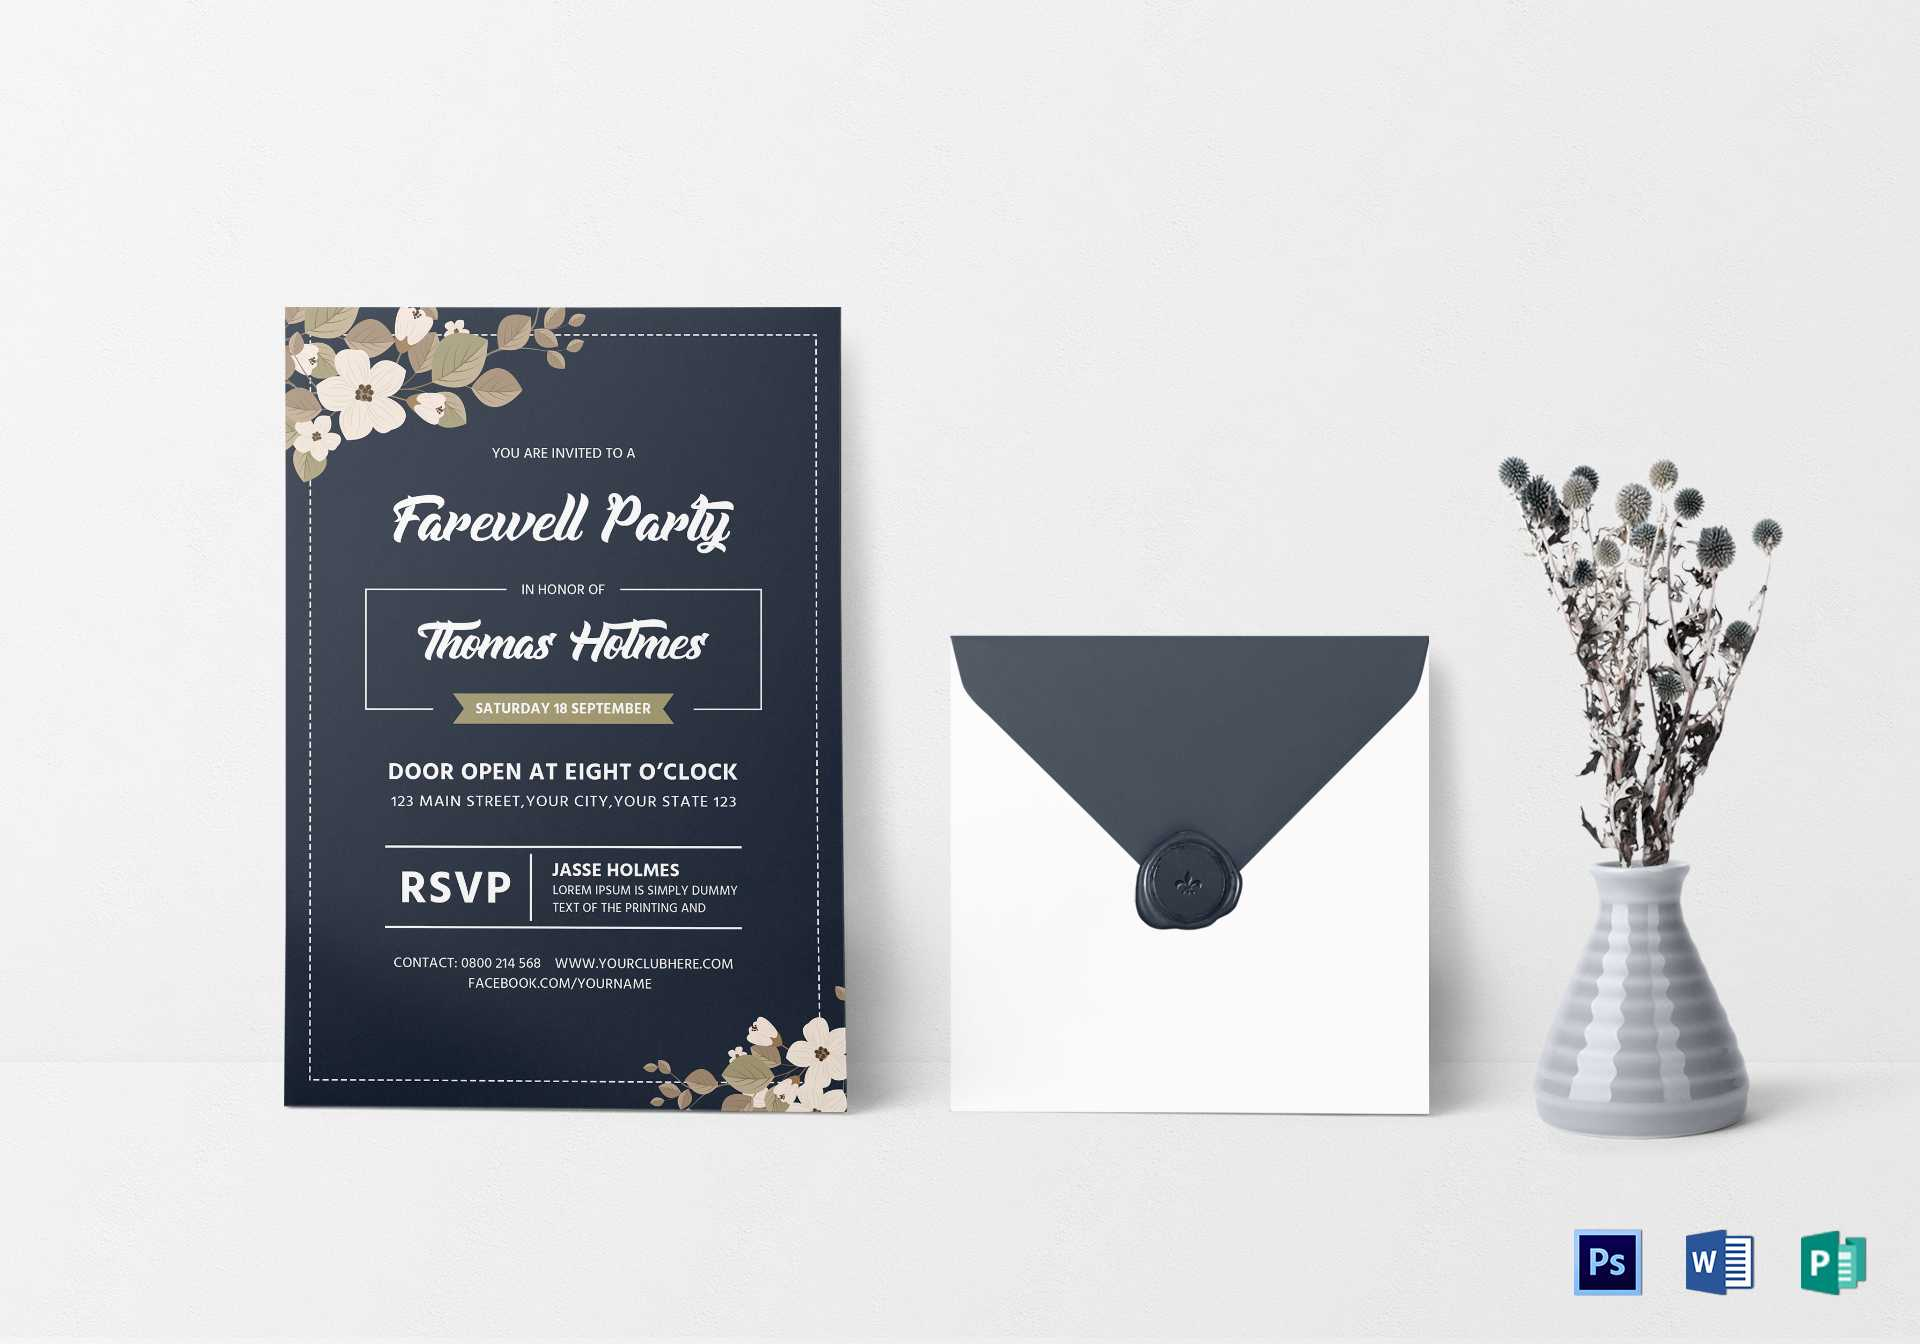 Farewell Party Invitation Card Template Regarding Farewell Regarding Farewell Card Template Word